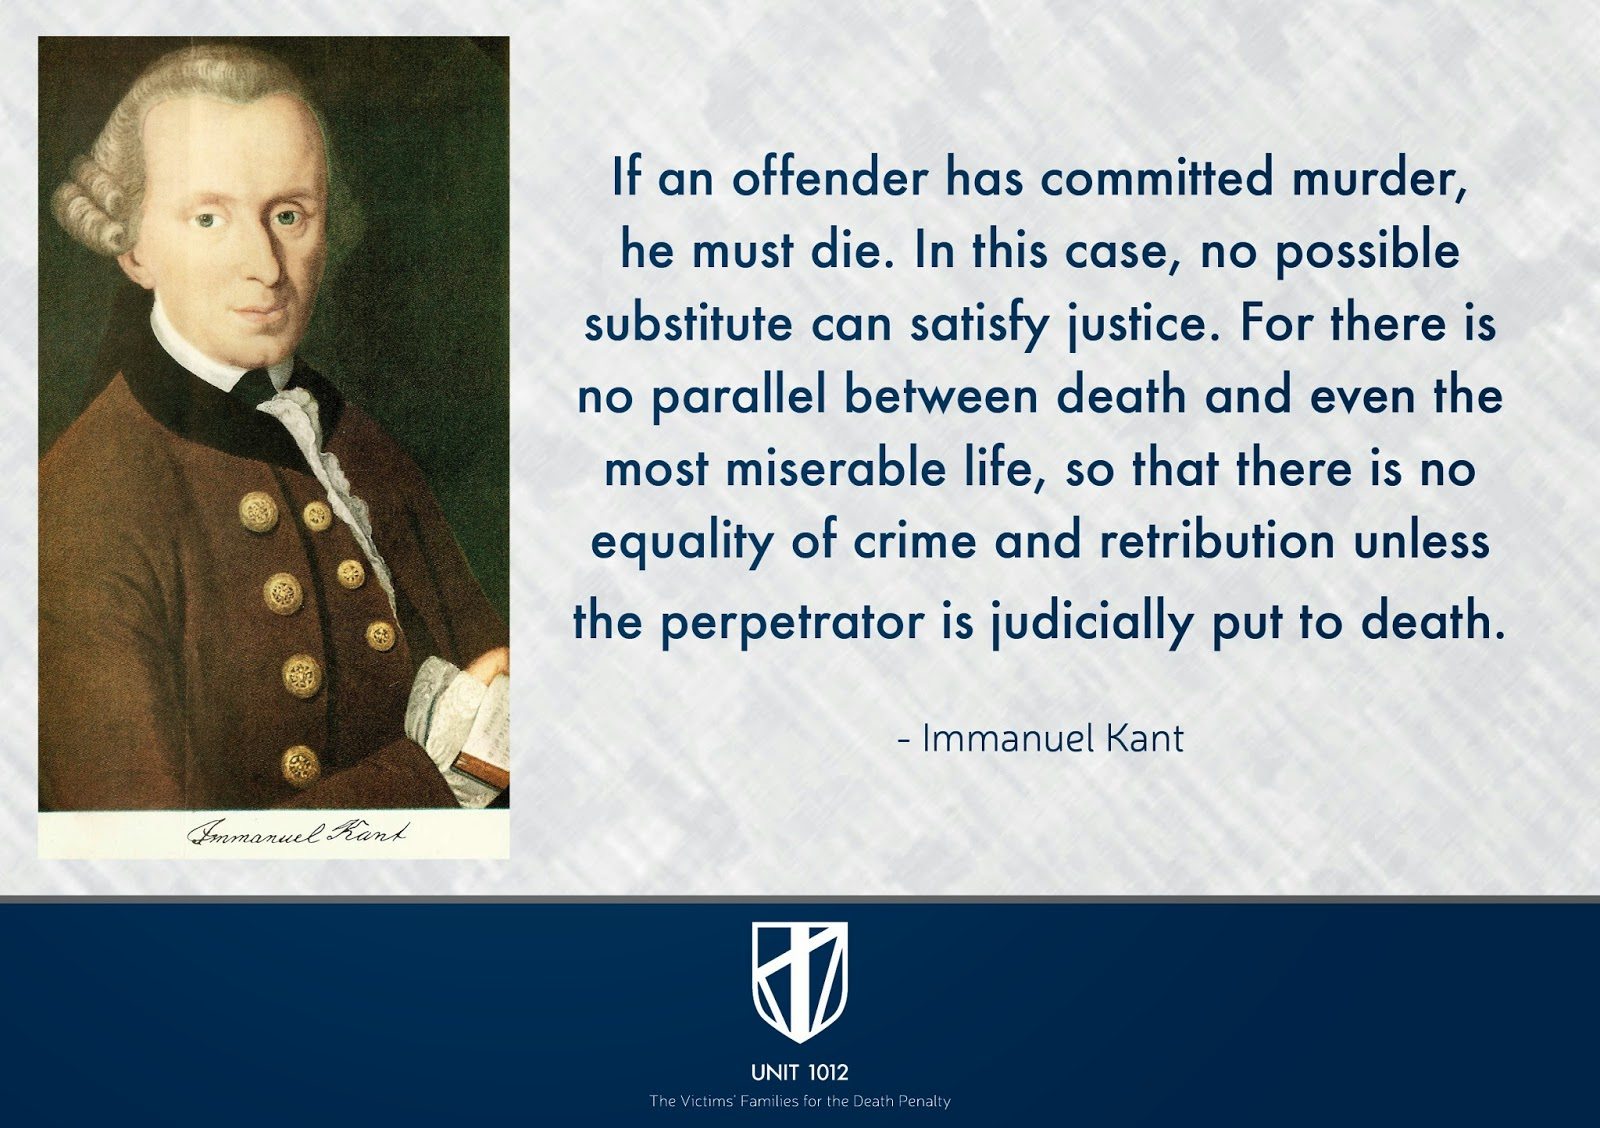 unit the victims families for the death penalty immanuel immanuel kant s pro death penalty quote pro death penalty quote